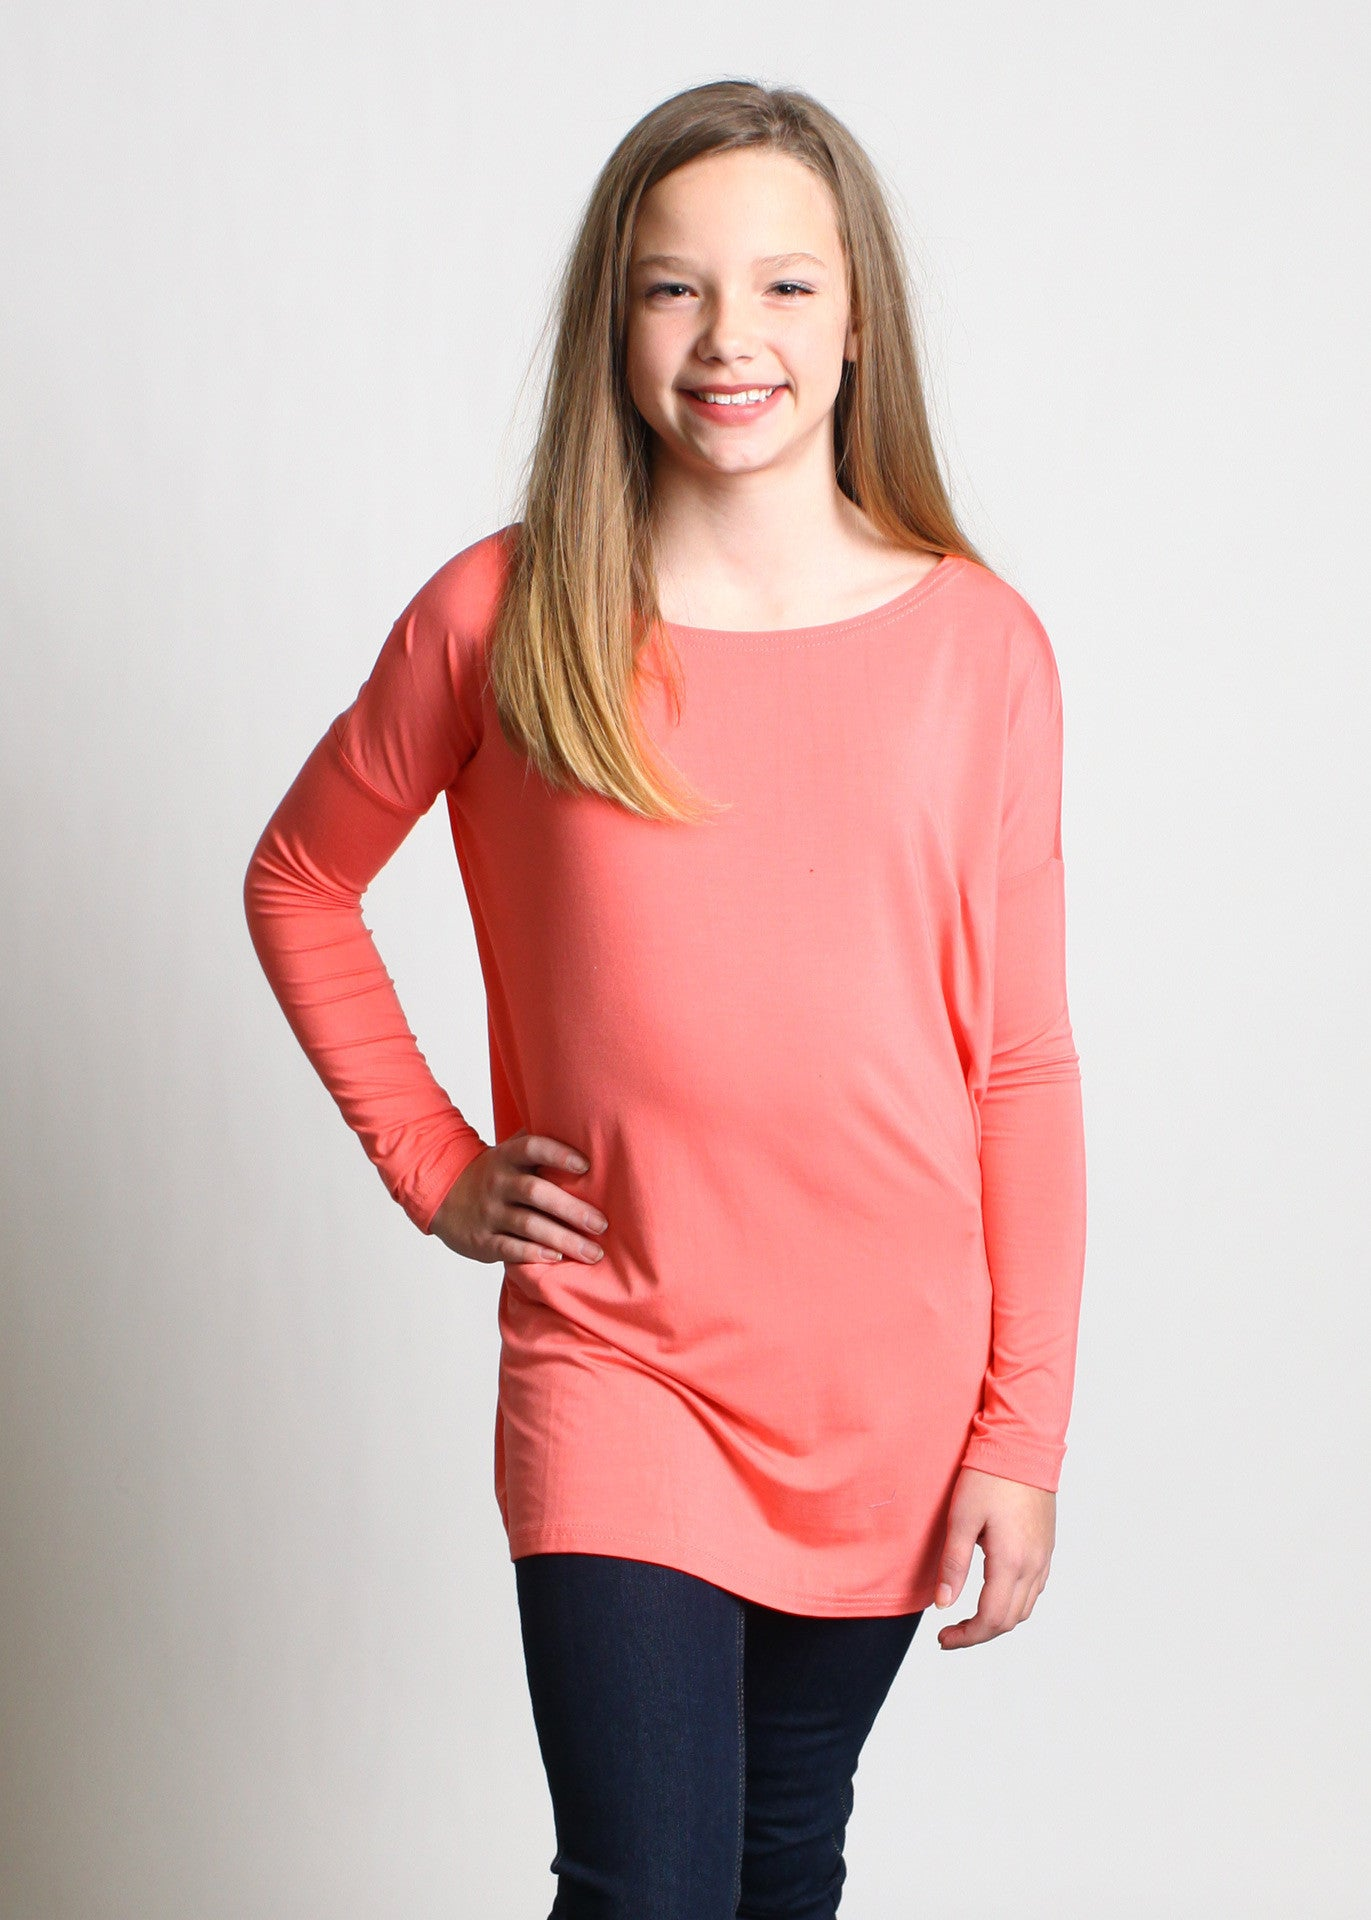 Original Kids Long Sleeve Top - Piko Clearance Center - 11